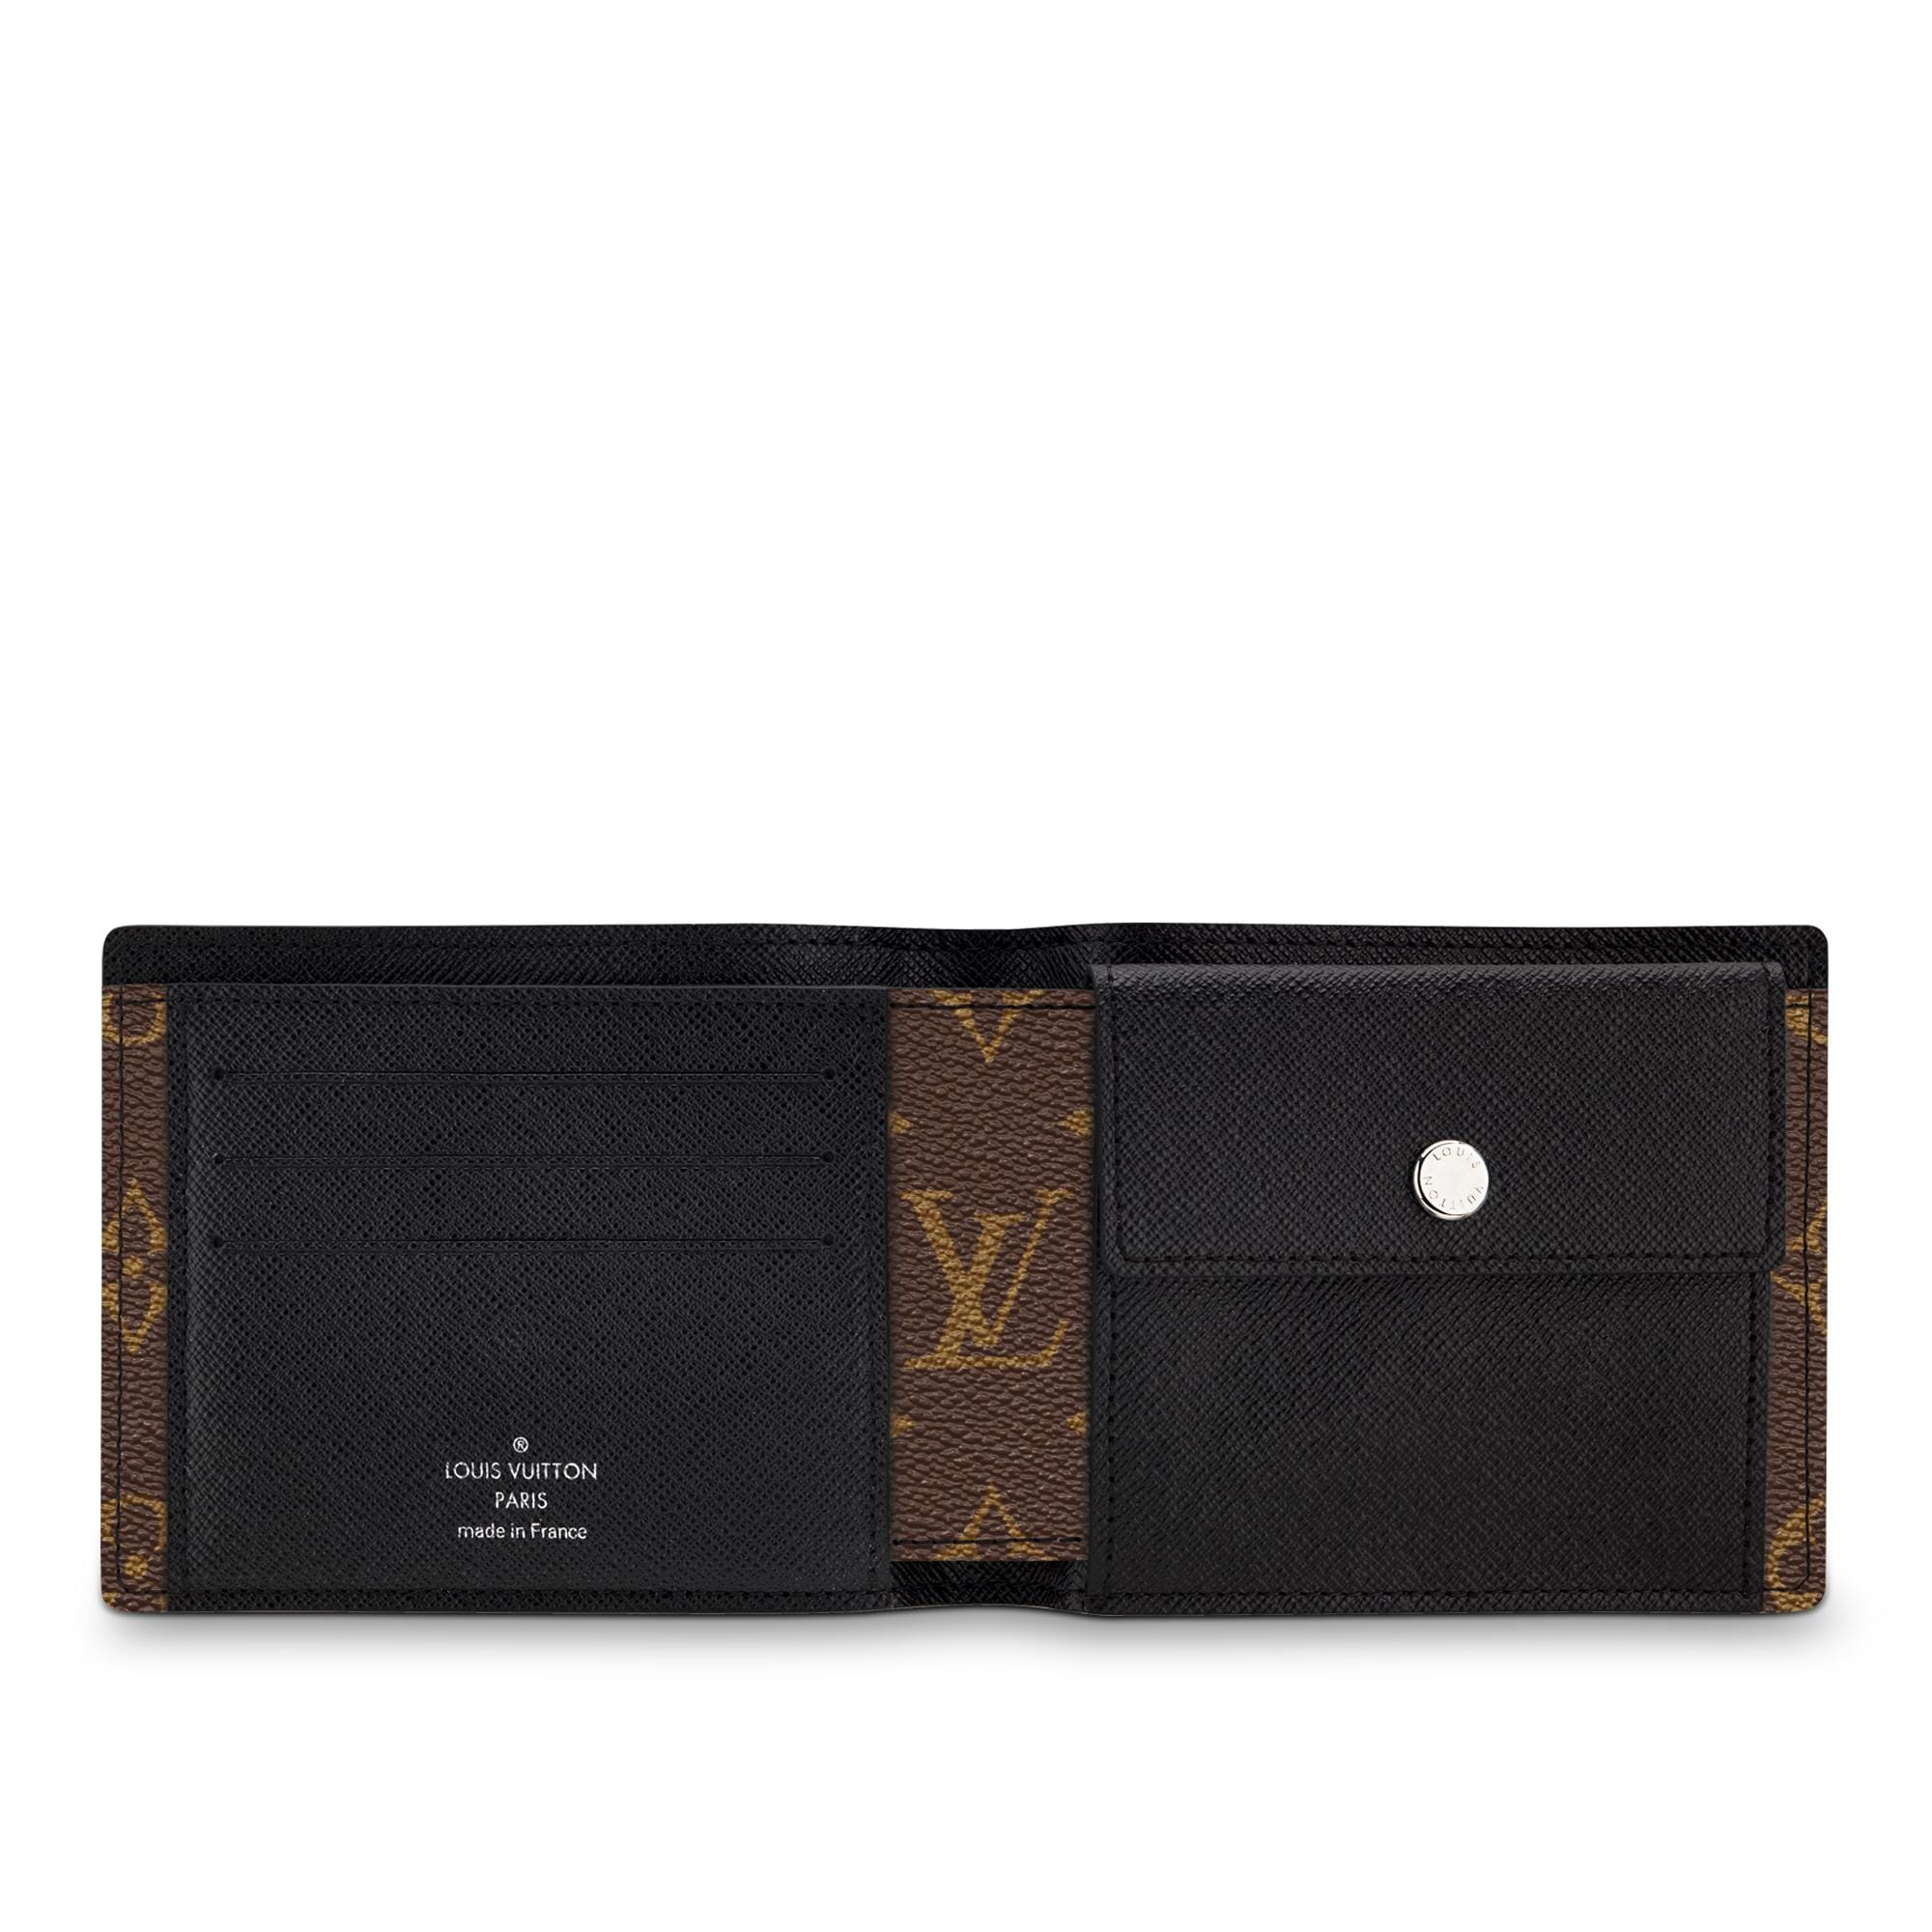 LOUIS VUITTON® PF Mindoro  Canvas Monogram Macassar - Carteiras compactas Carteiras e Mais